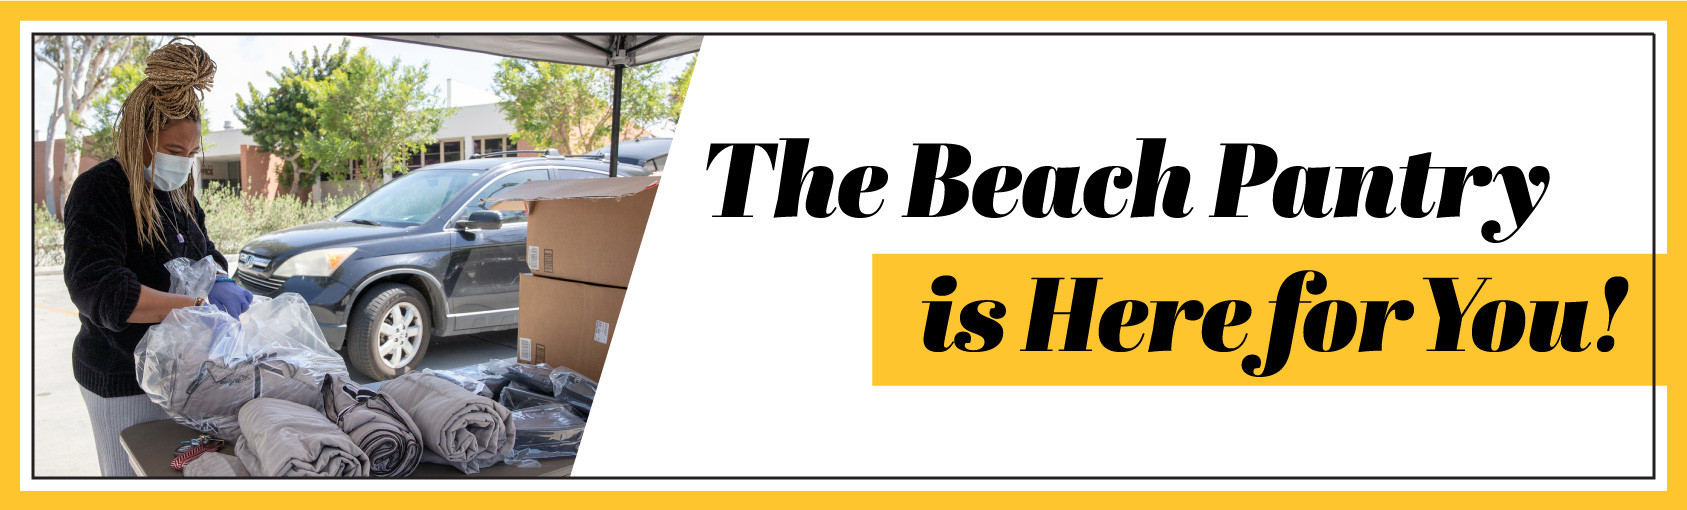 The Beach Pantry is Here for You! banner